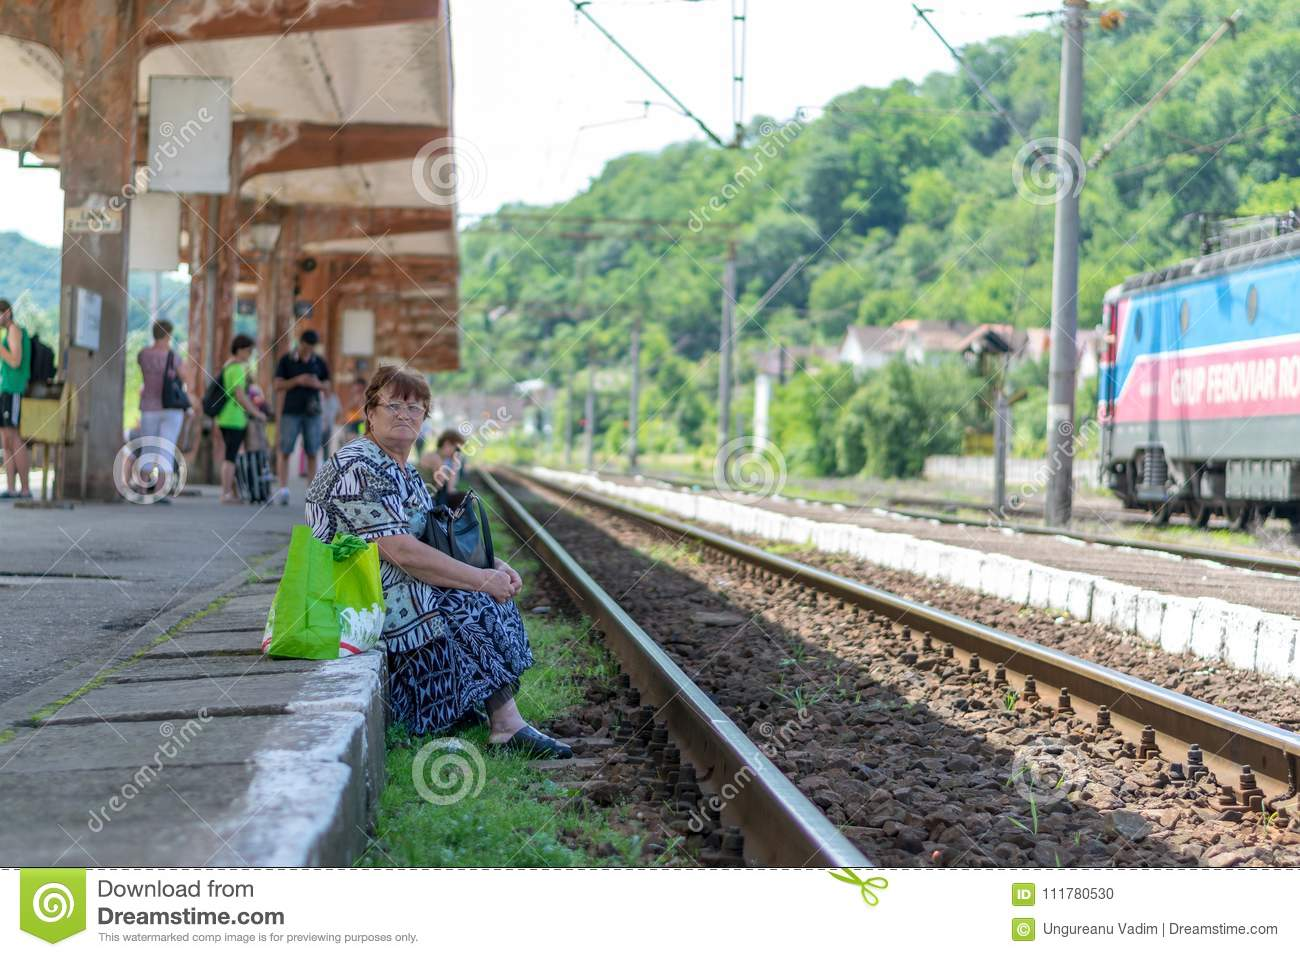 SIGHISOARA, ROMANIA - 1 JULY 2016: Older woman waiting for the train in Sighisoara, Romania.